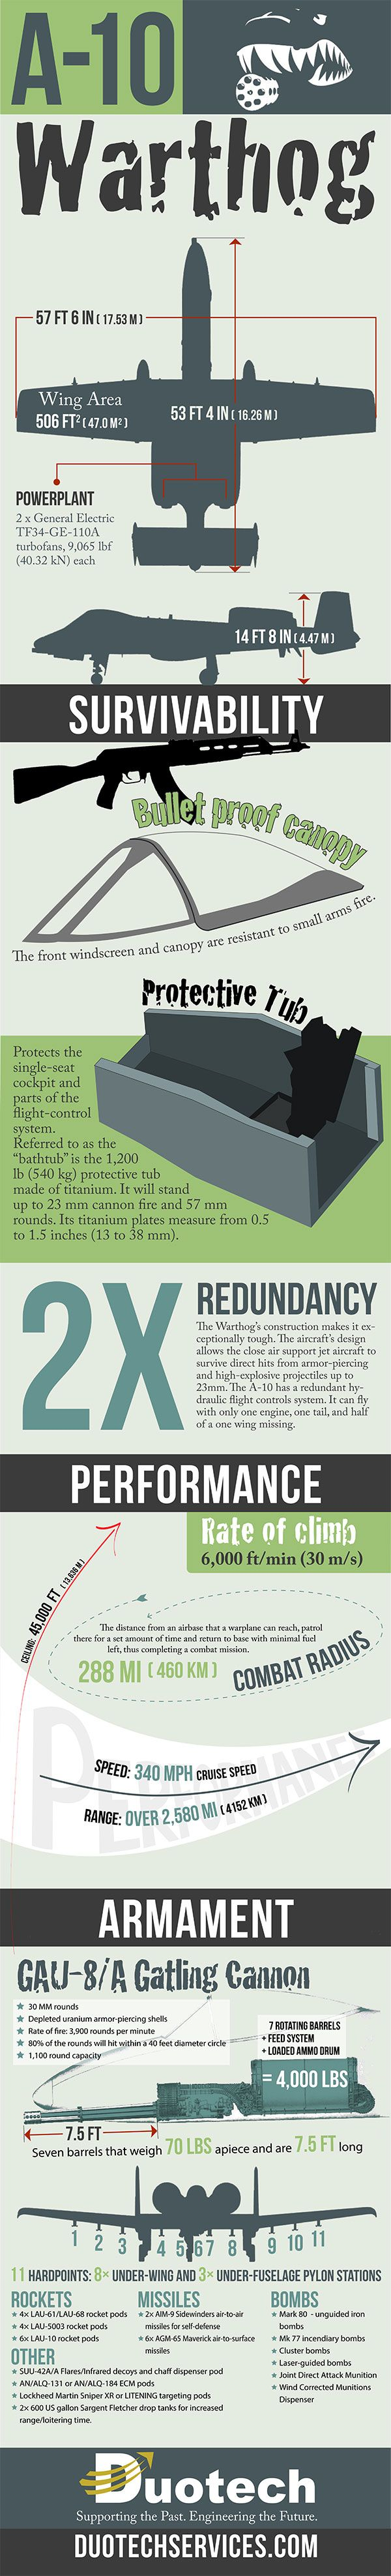 A-10 Thunderbolt II (Warthog) Infographic